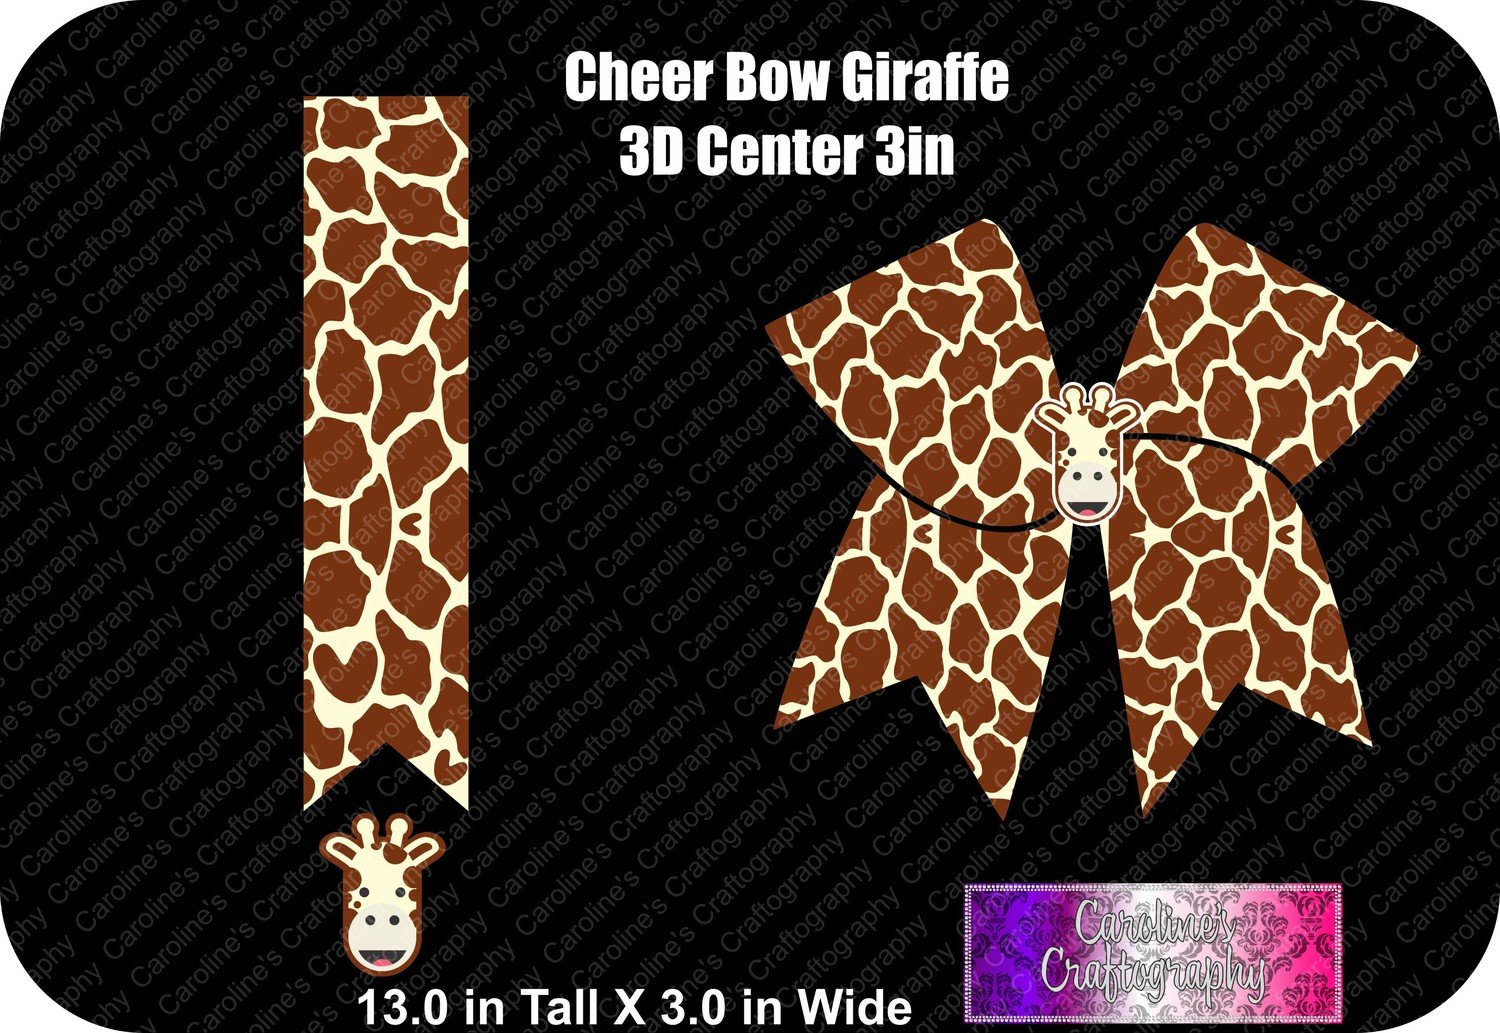 Giraffe 3in with 3D Center Cheer Bow